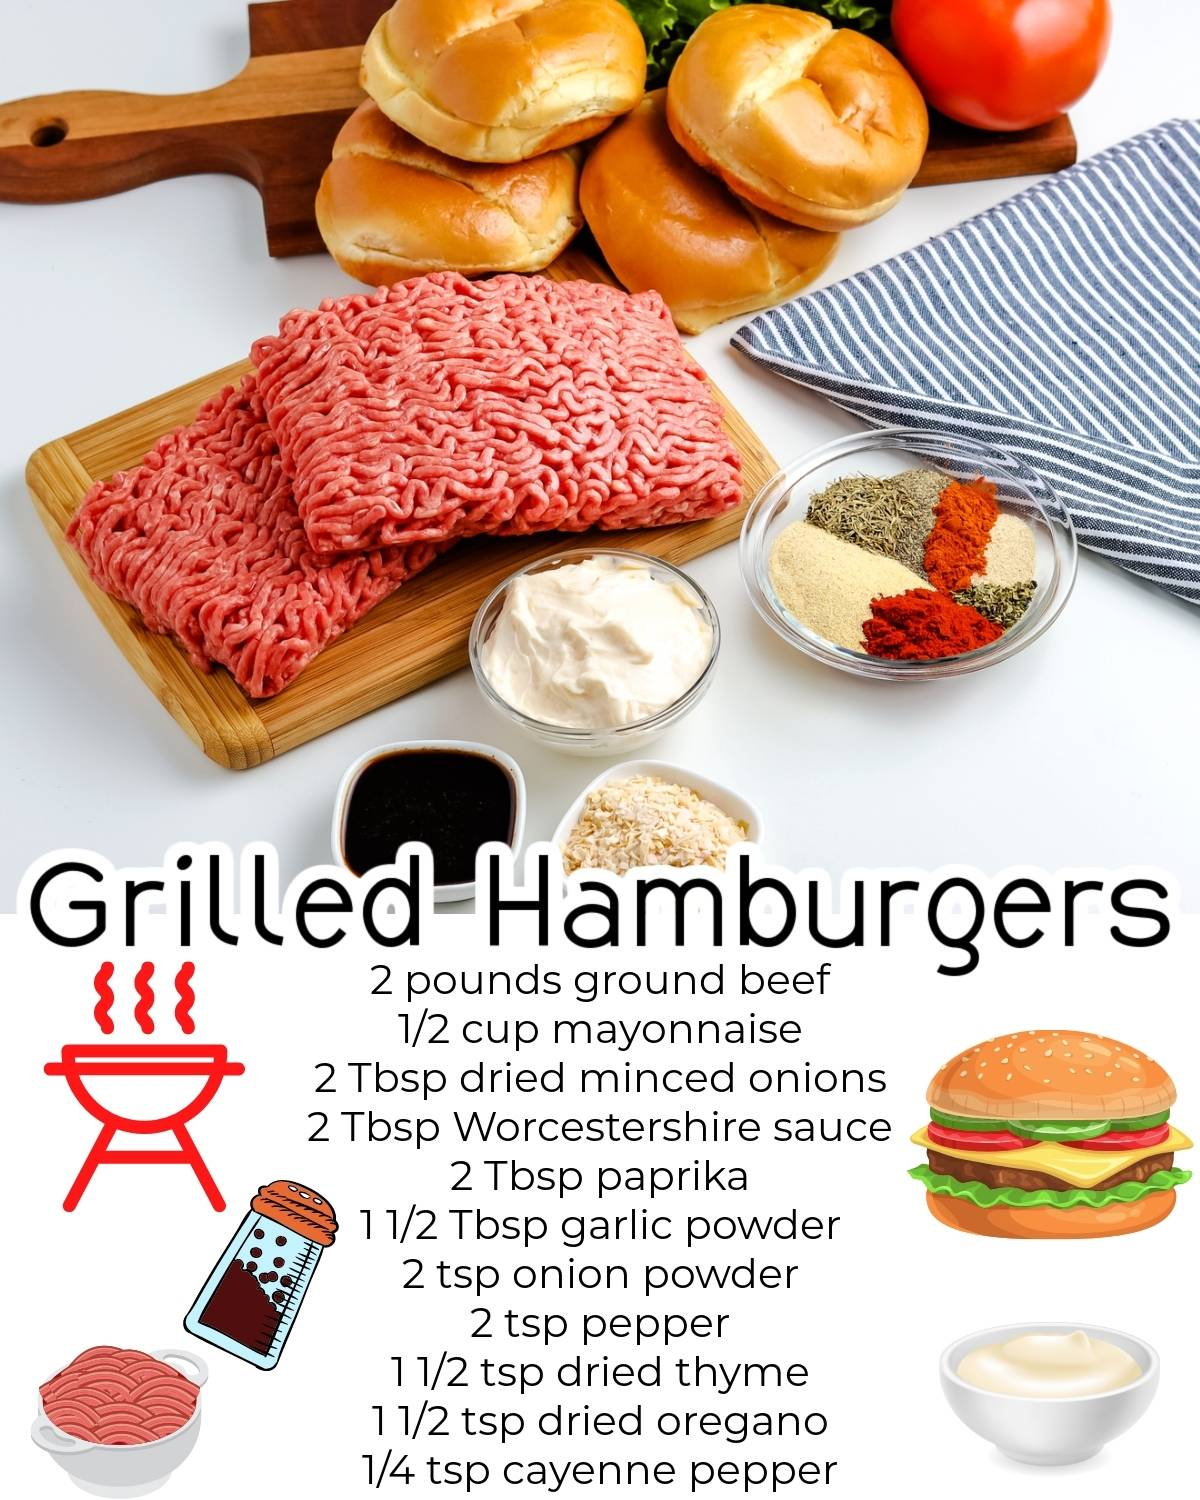 All of the ingredients needed to make the best grilled hamburgers.